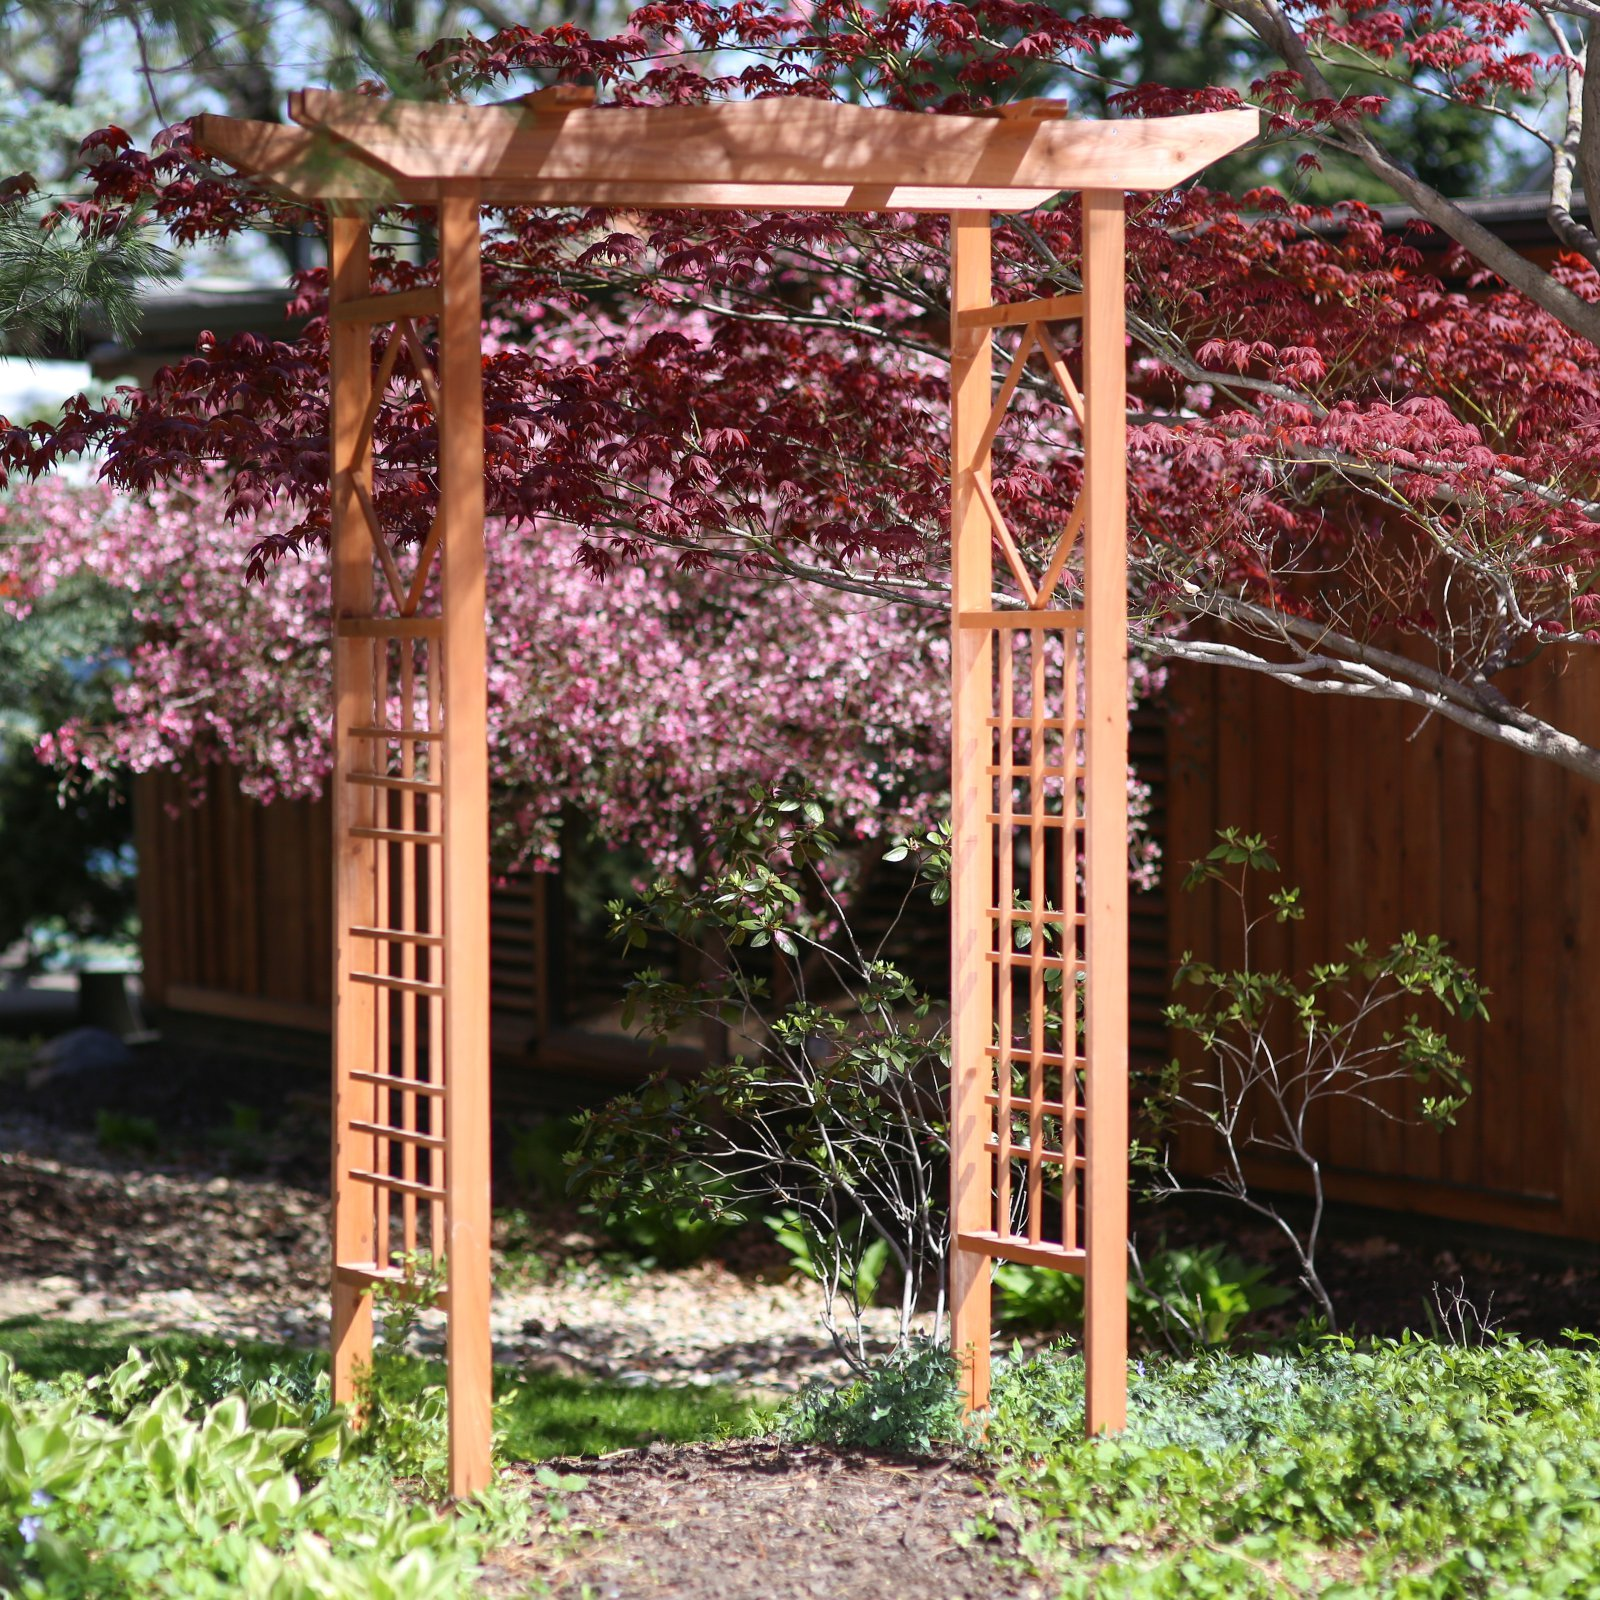 Arbor Over Gate Ideas: Outdoor 6.5 Ft. Pagoda Wood Arbor Garden Gate Trellis